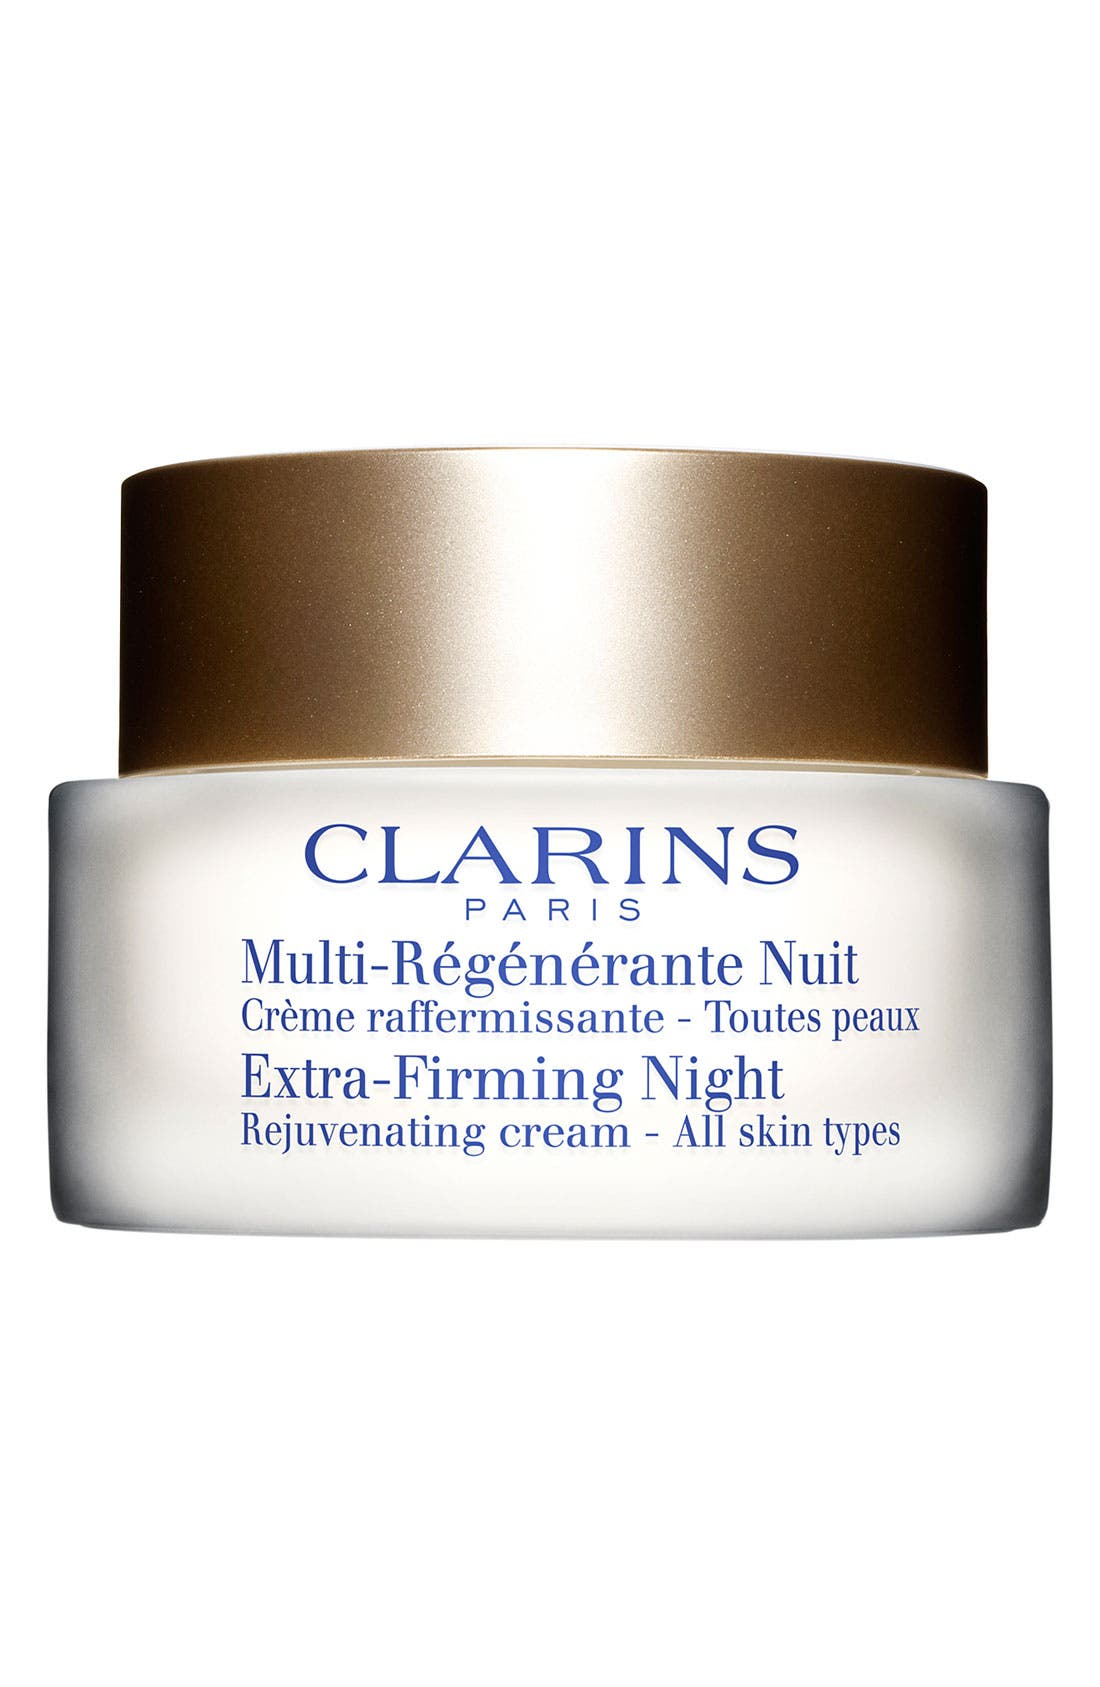 Clarins 'Extra-Firming' Night Cream for All Skin Types